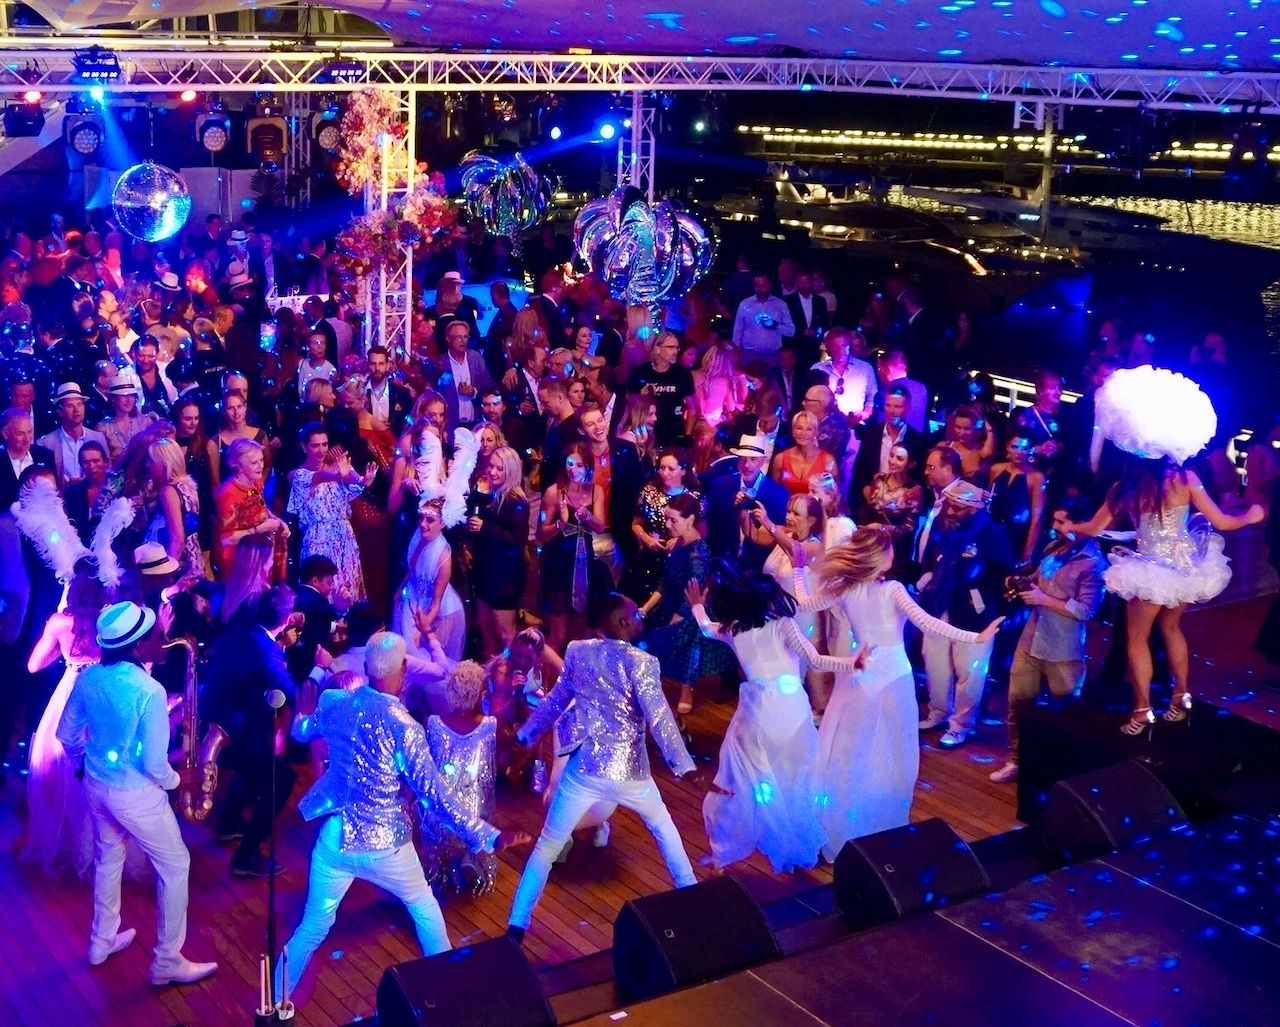 The Lürssen party at the Monaco Yacht Club